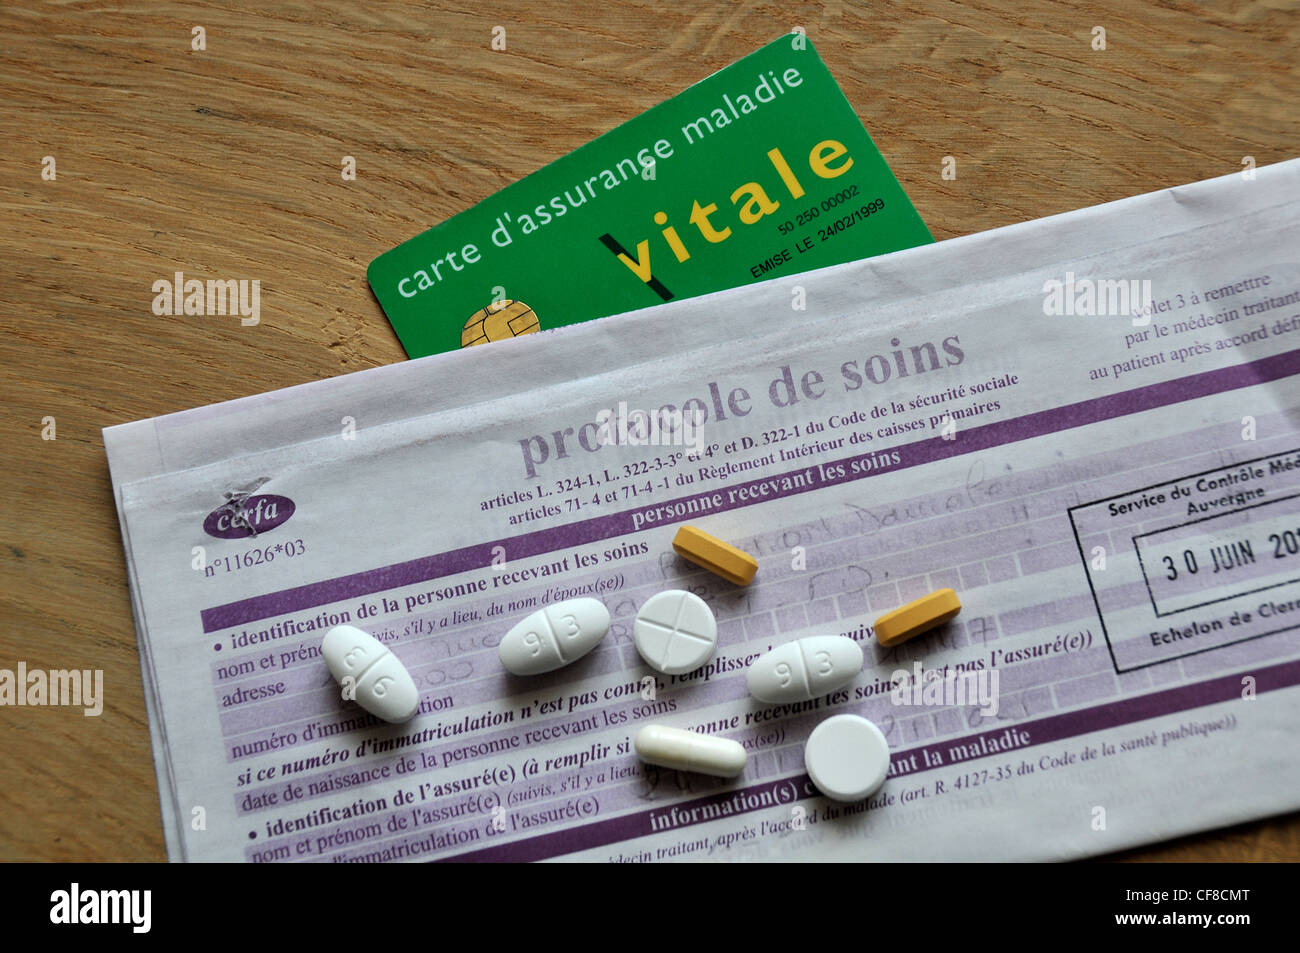 Vitale card sheet treatment protocol of french social security form - Stock Image